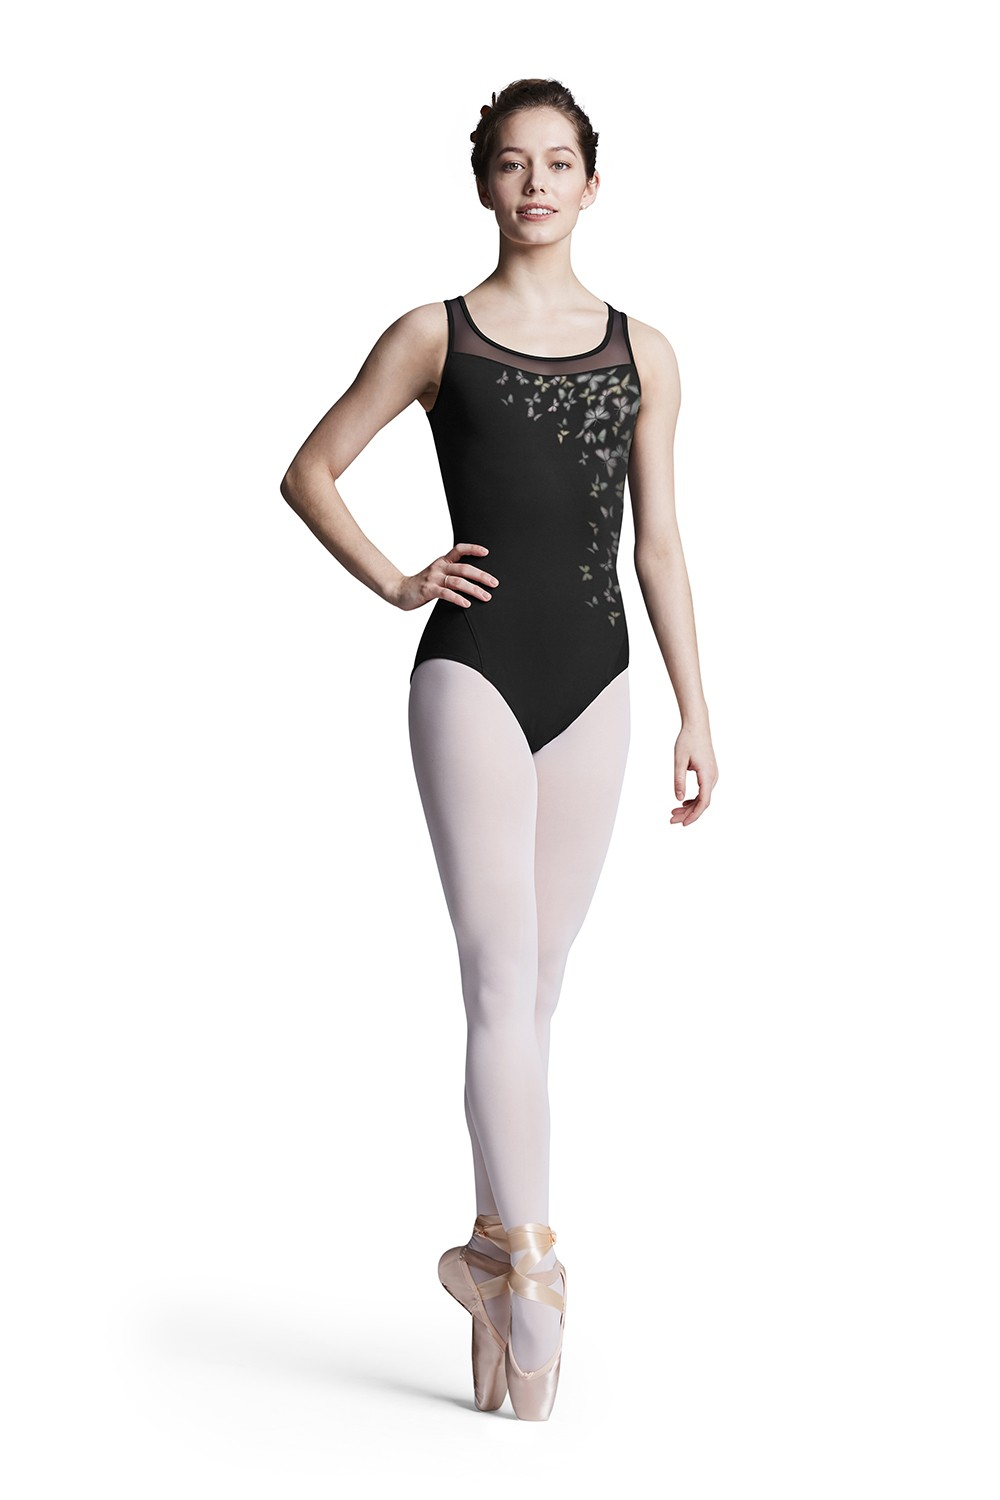 Coco Women's Dance Leotards